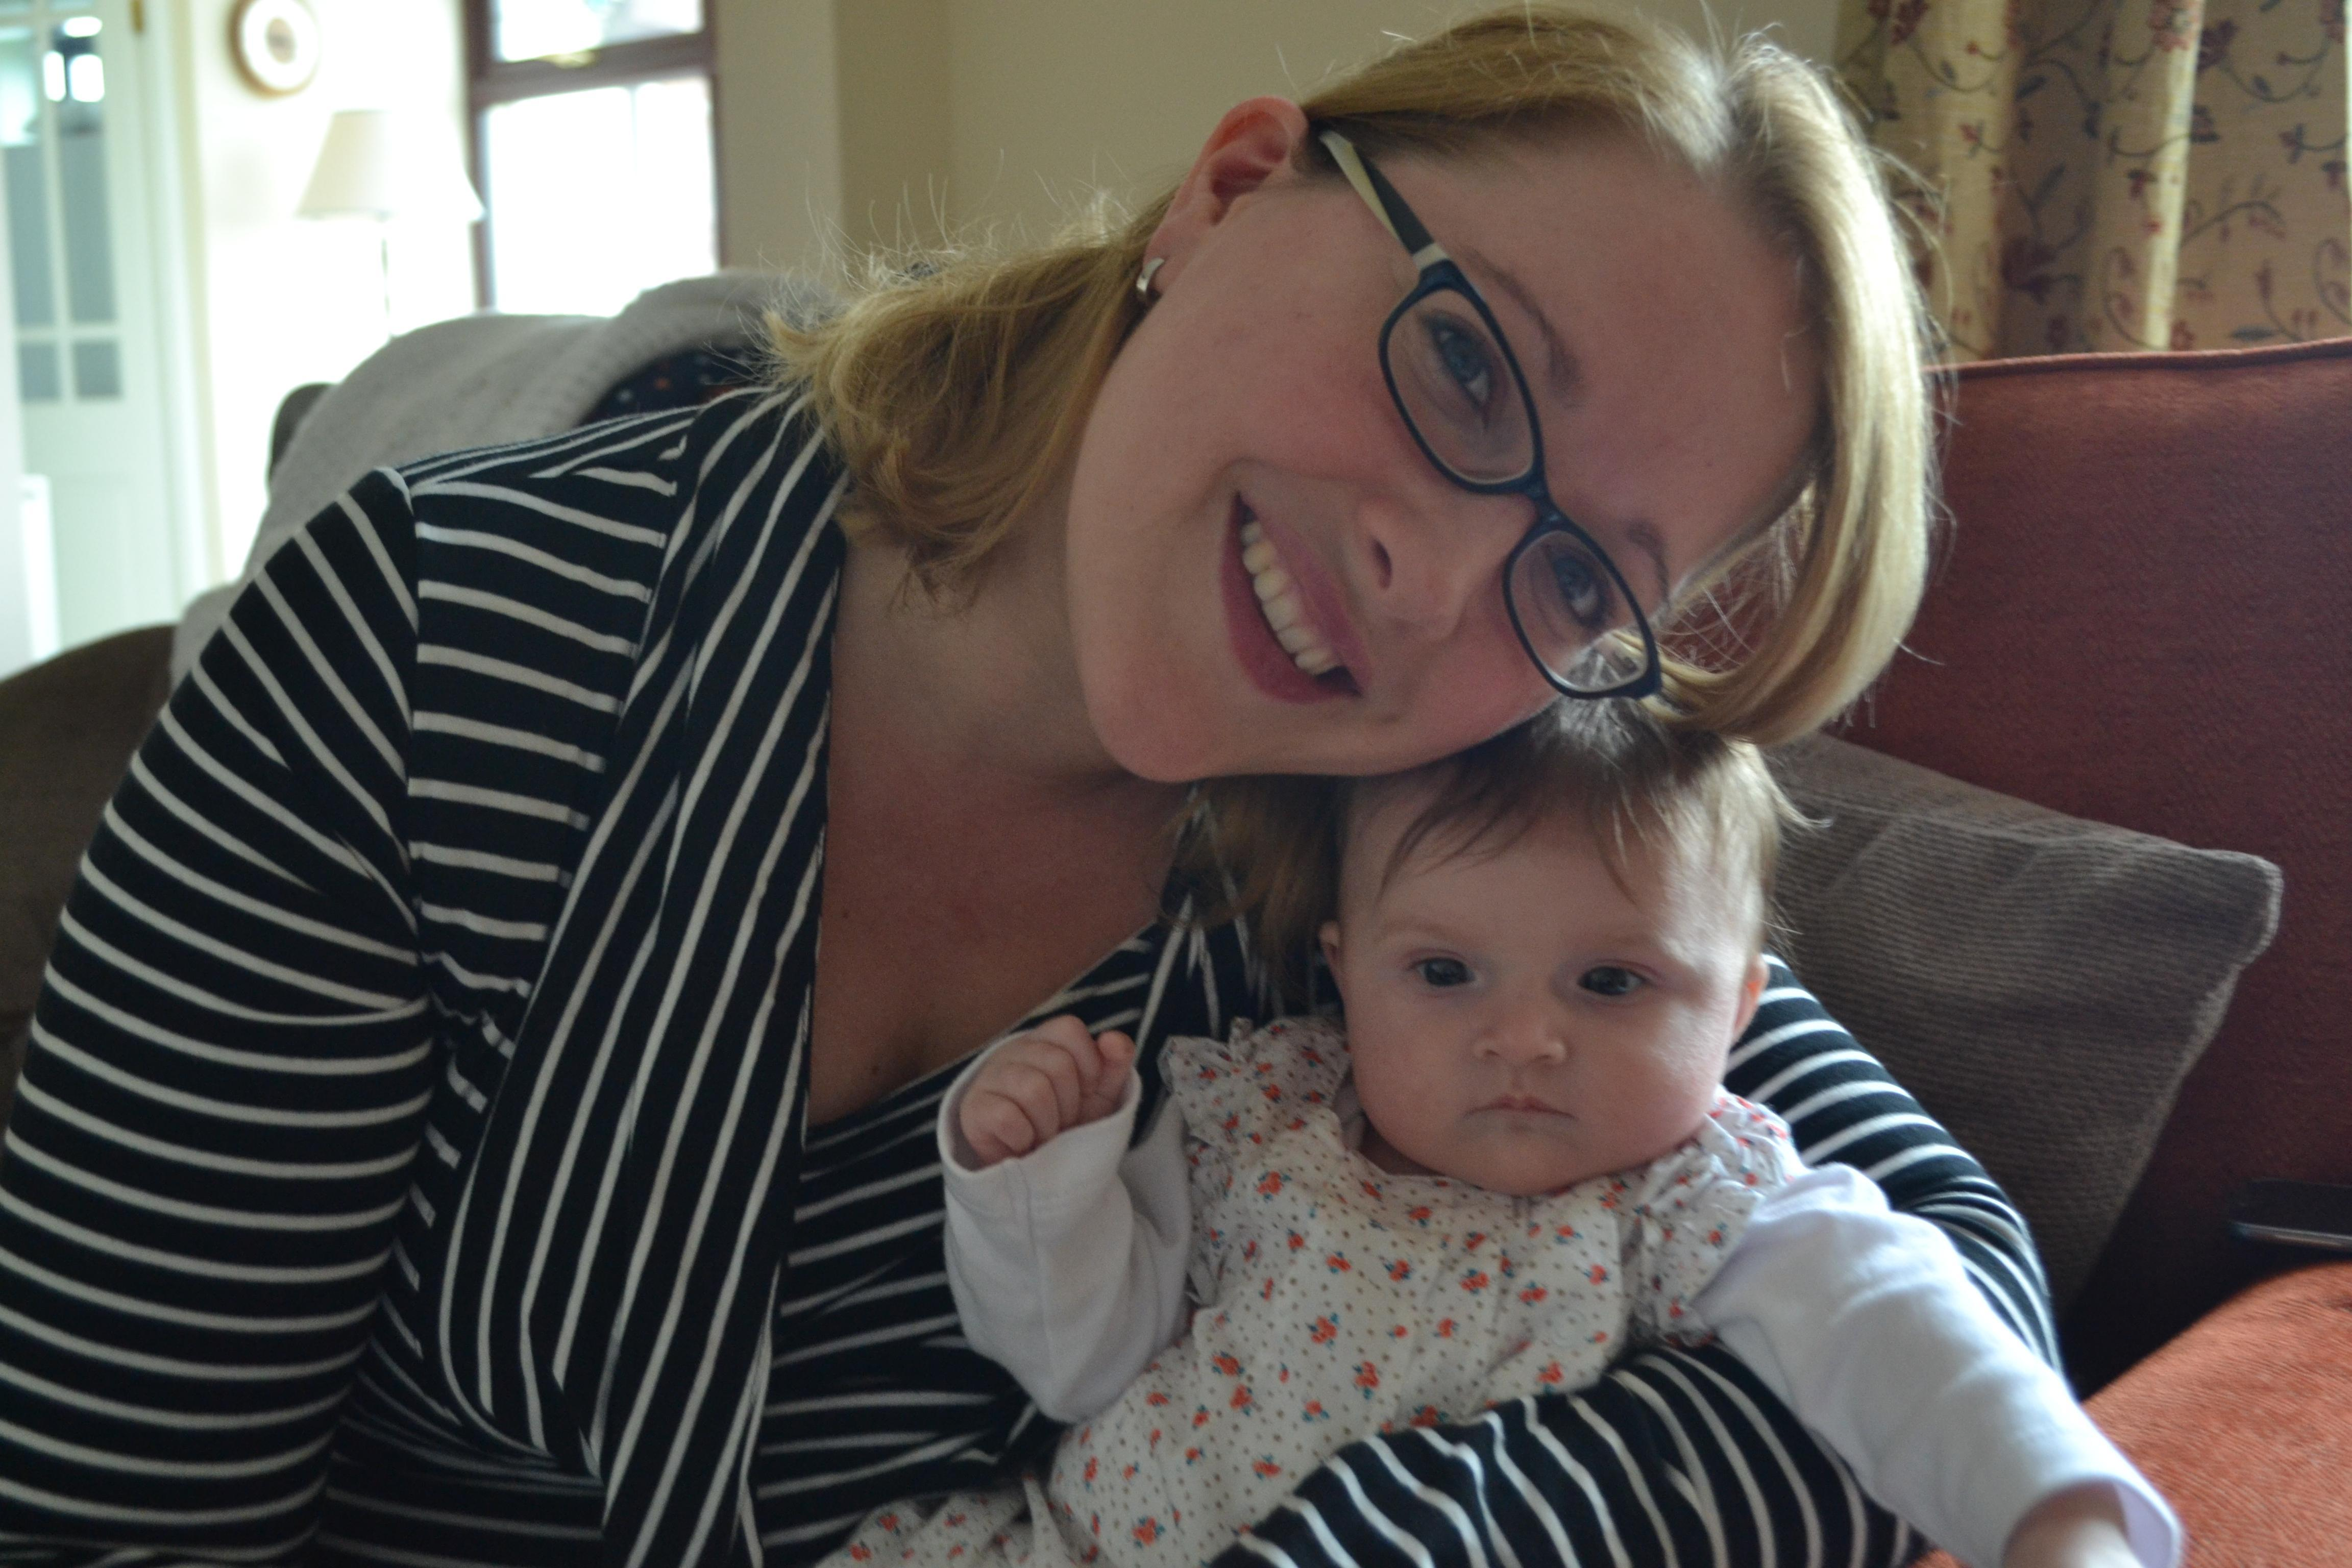 More than one in five mums struggle to bond with their baby and are 'crippled by emotional and mental problems'